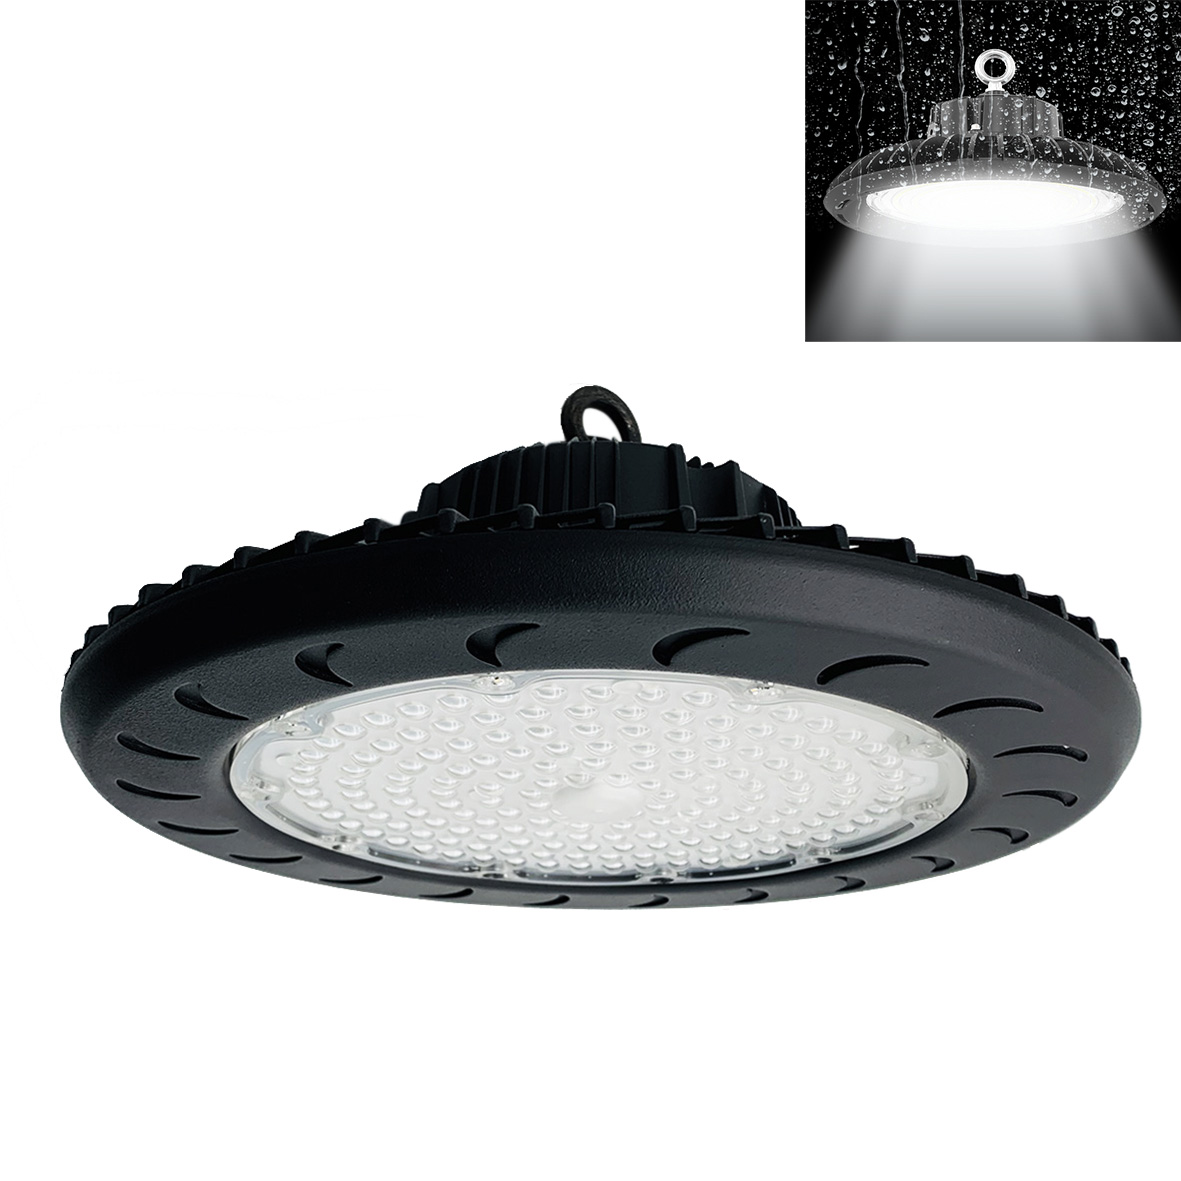 Phare Led halls Industriels 100W Disque Rond bell UFO led FE83-100W